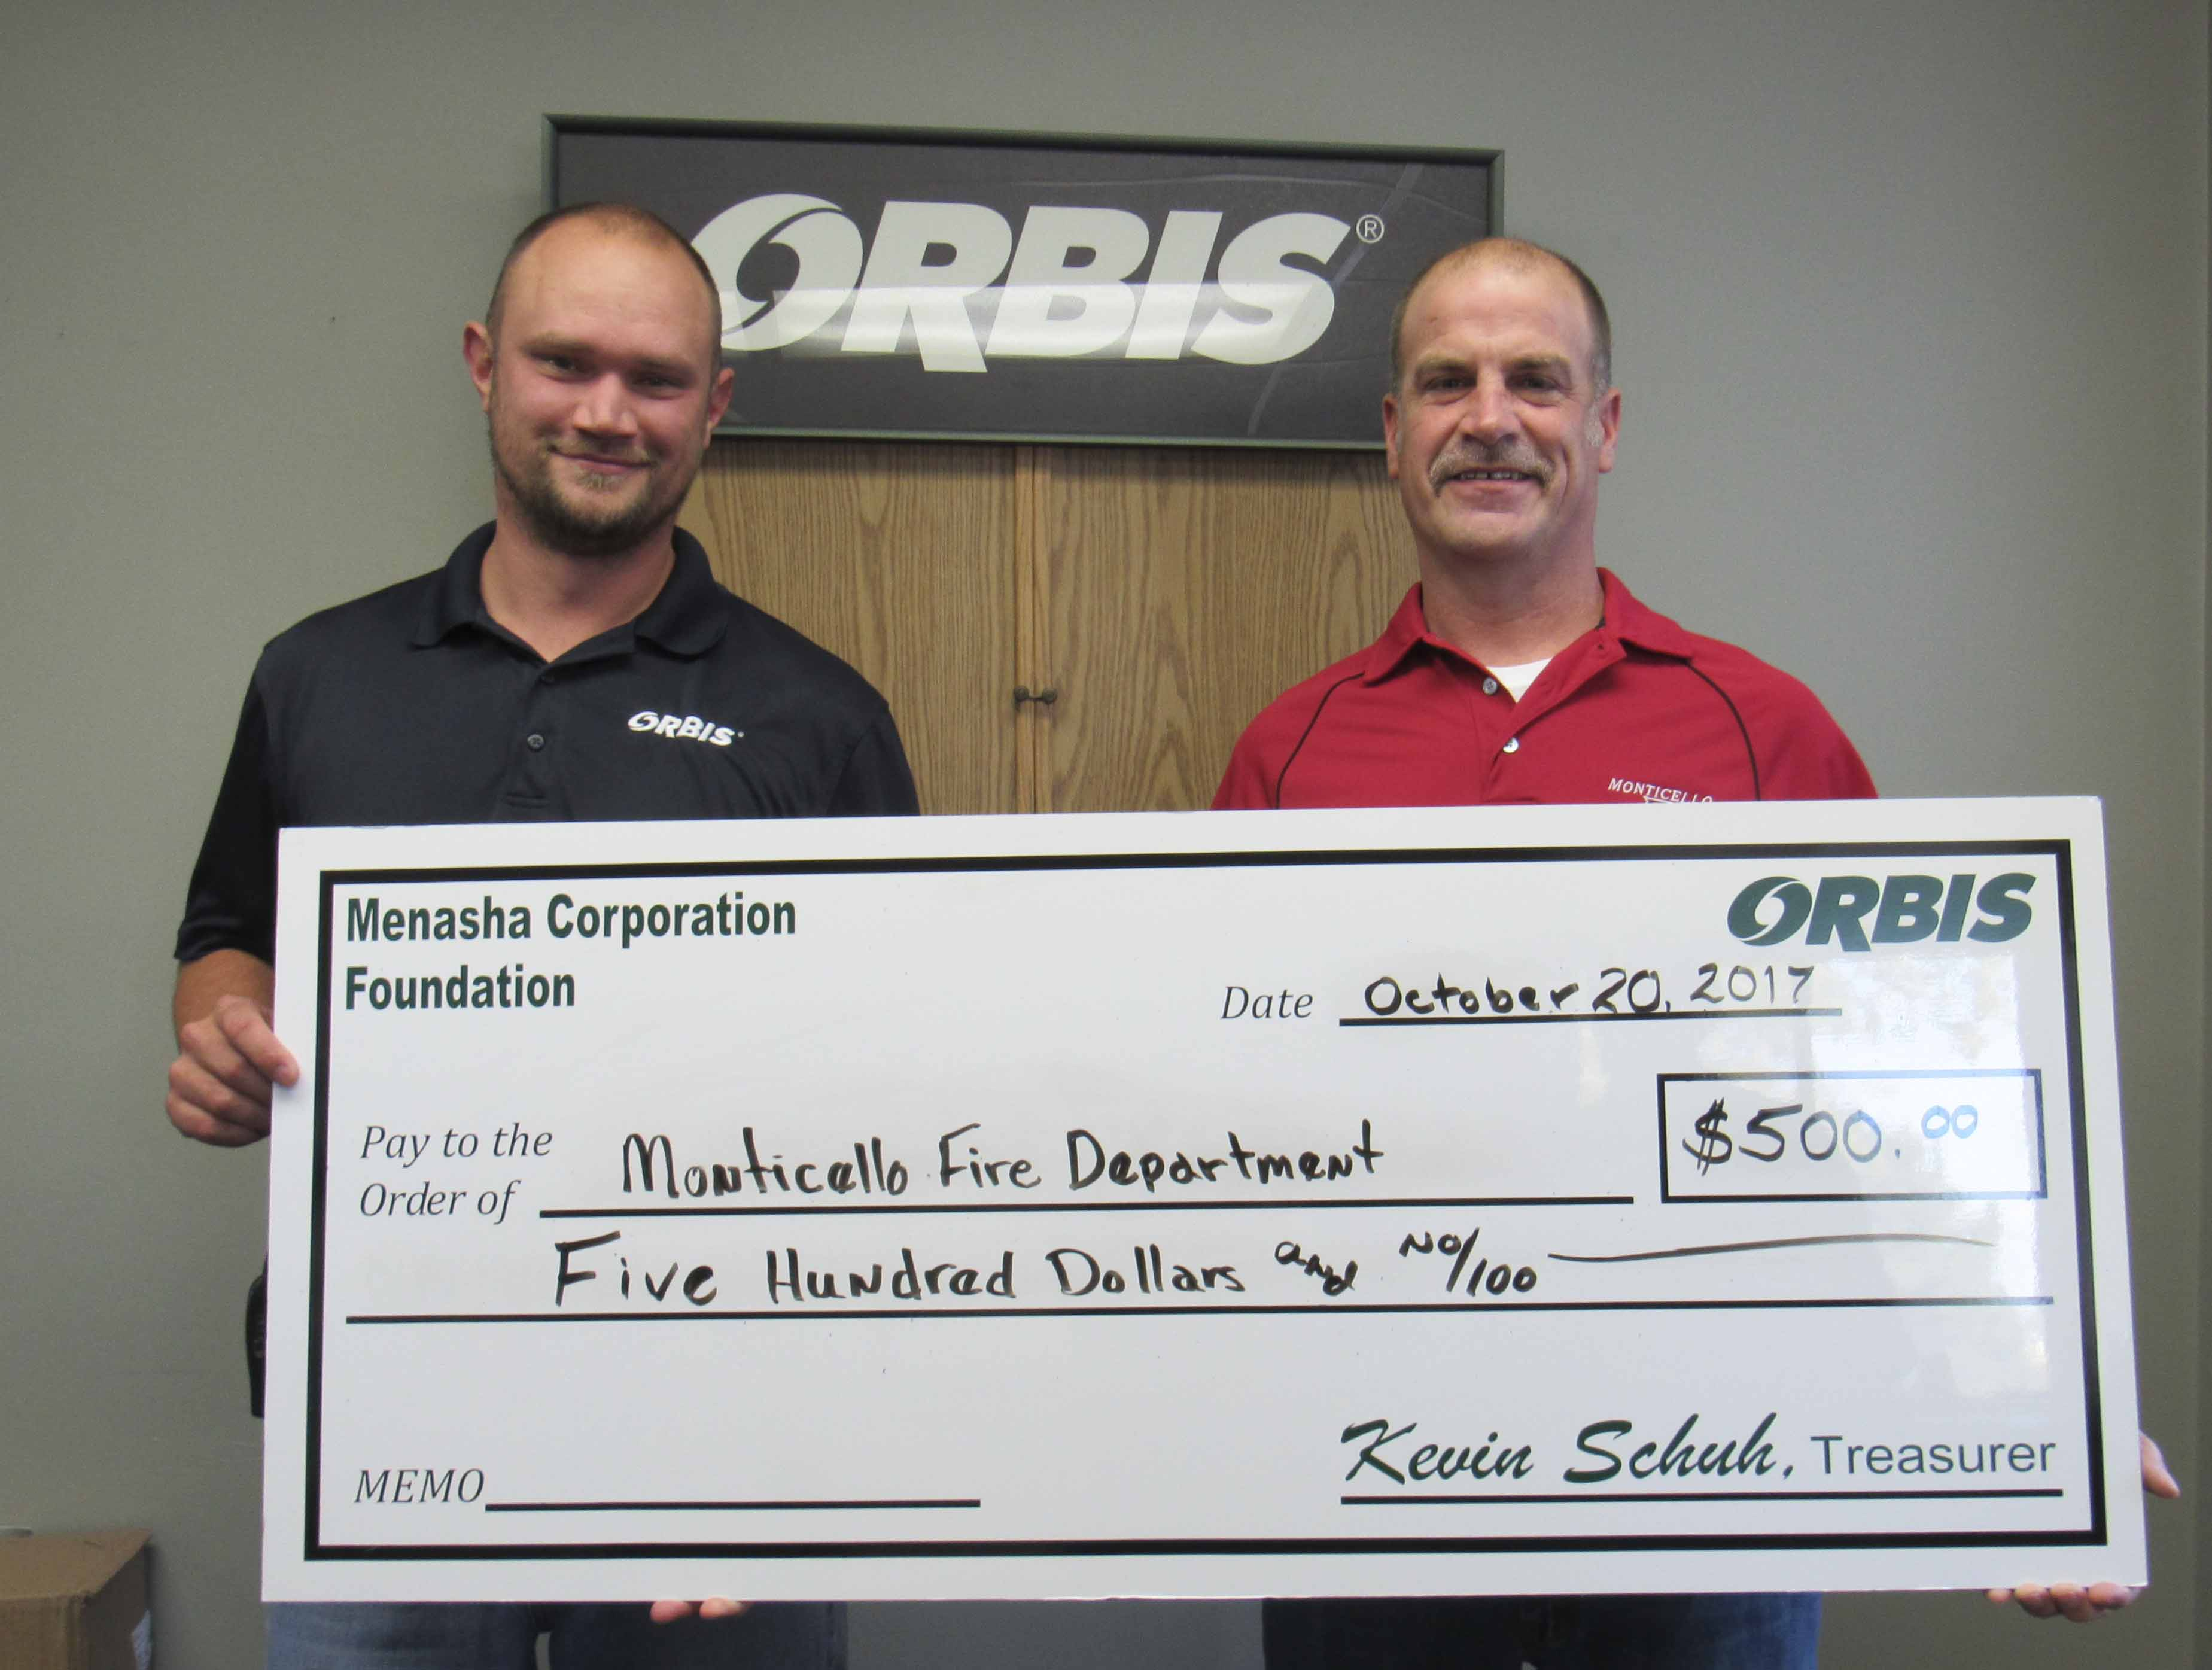 Greg Kemp (left) with Orbis presents a check to Don McCarthy, Monticello Fire Department chief. (Photo by Kim Brooks)